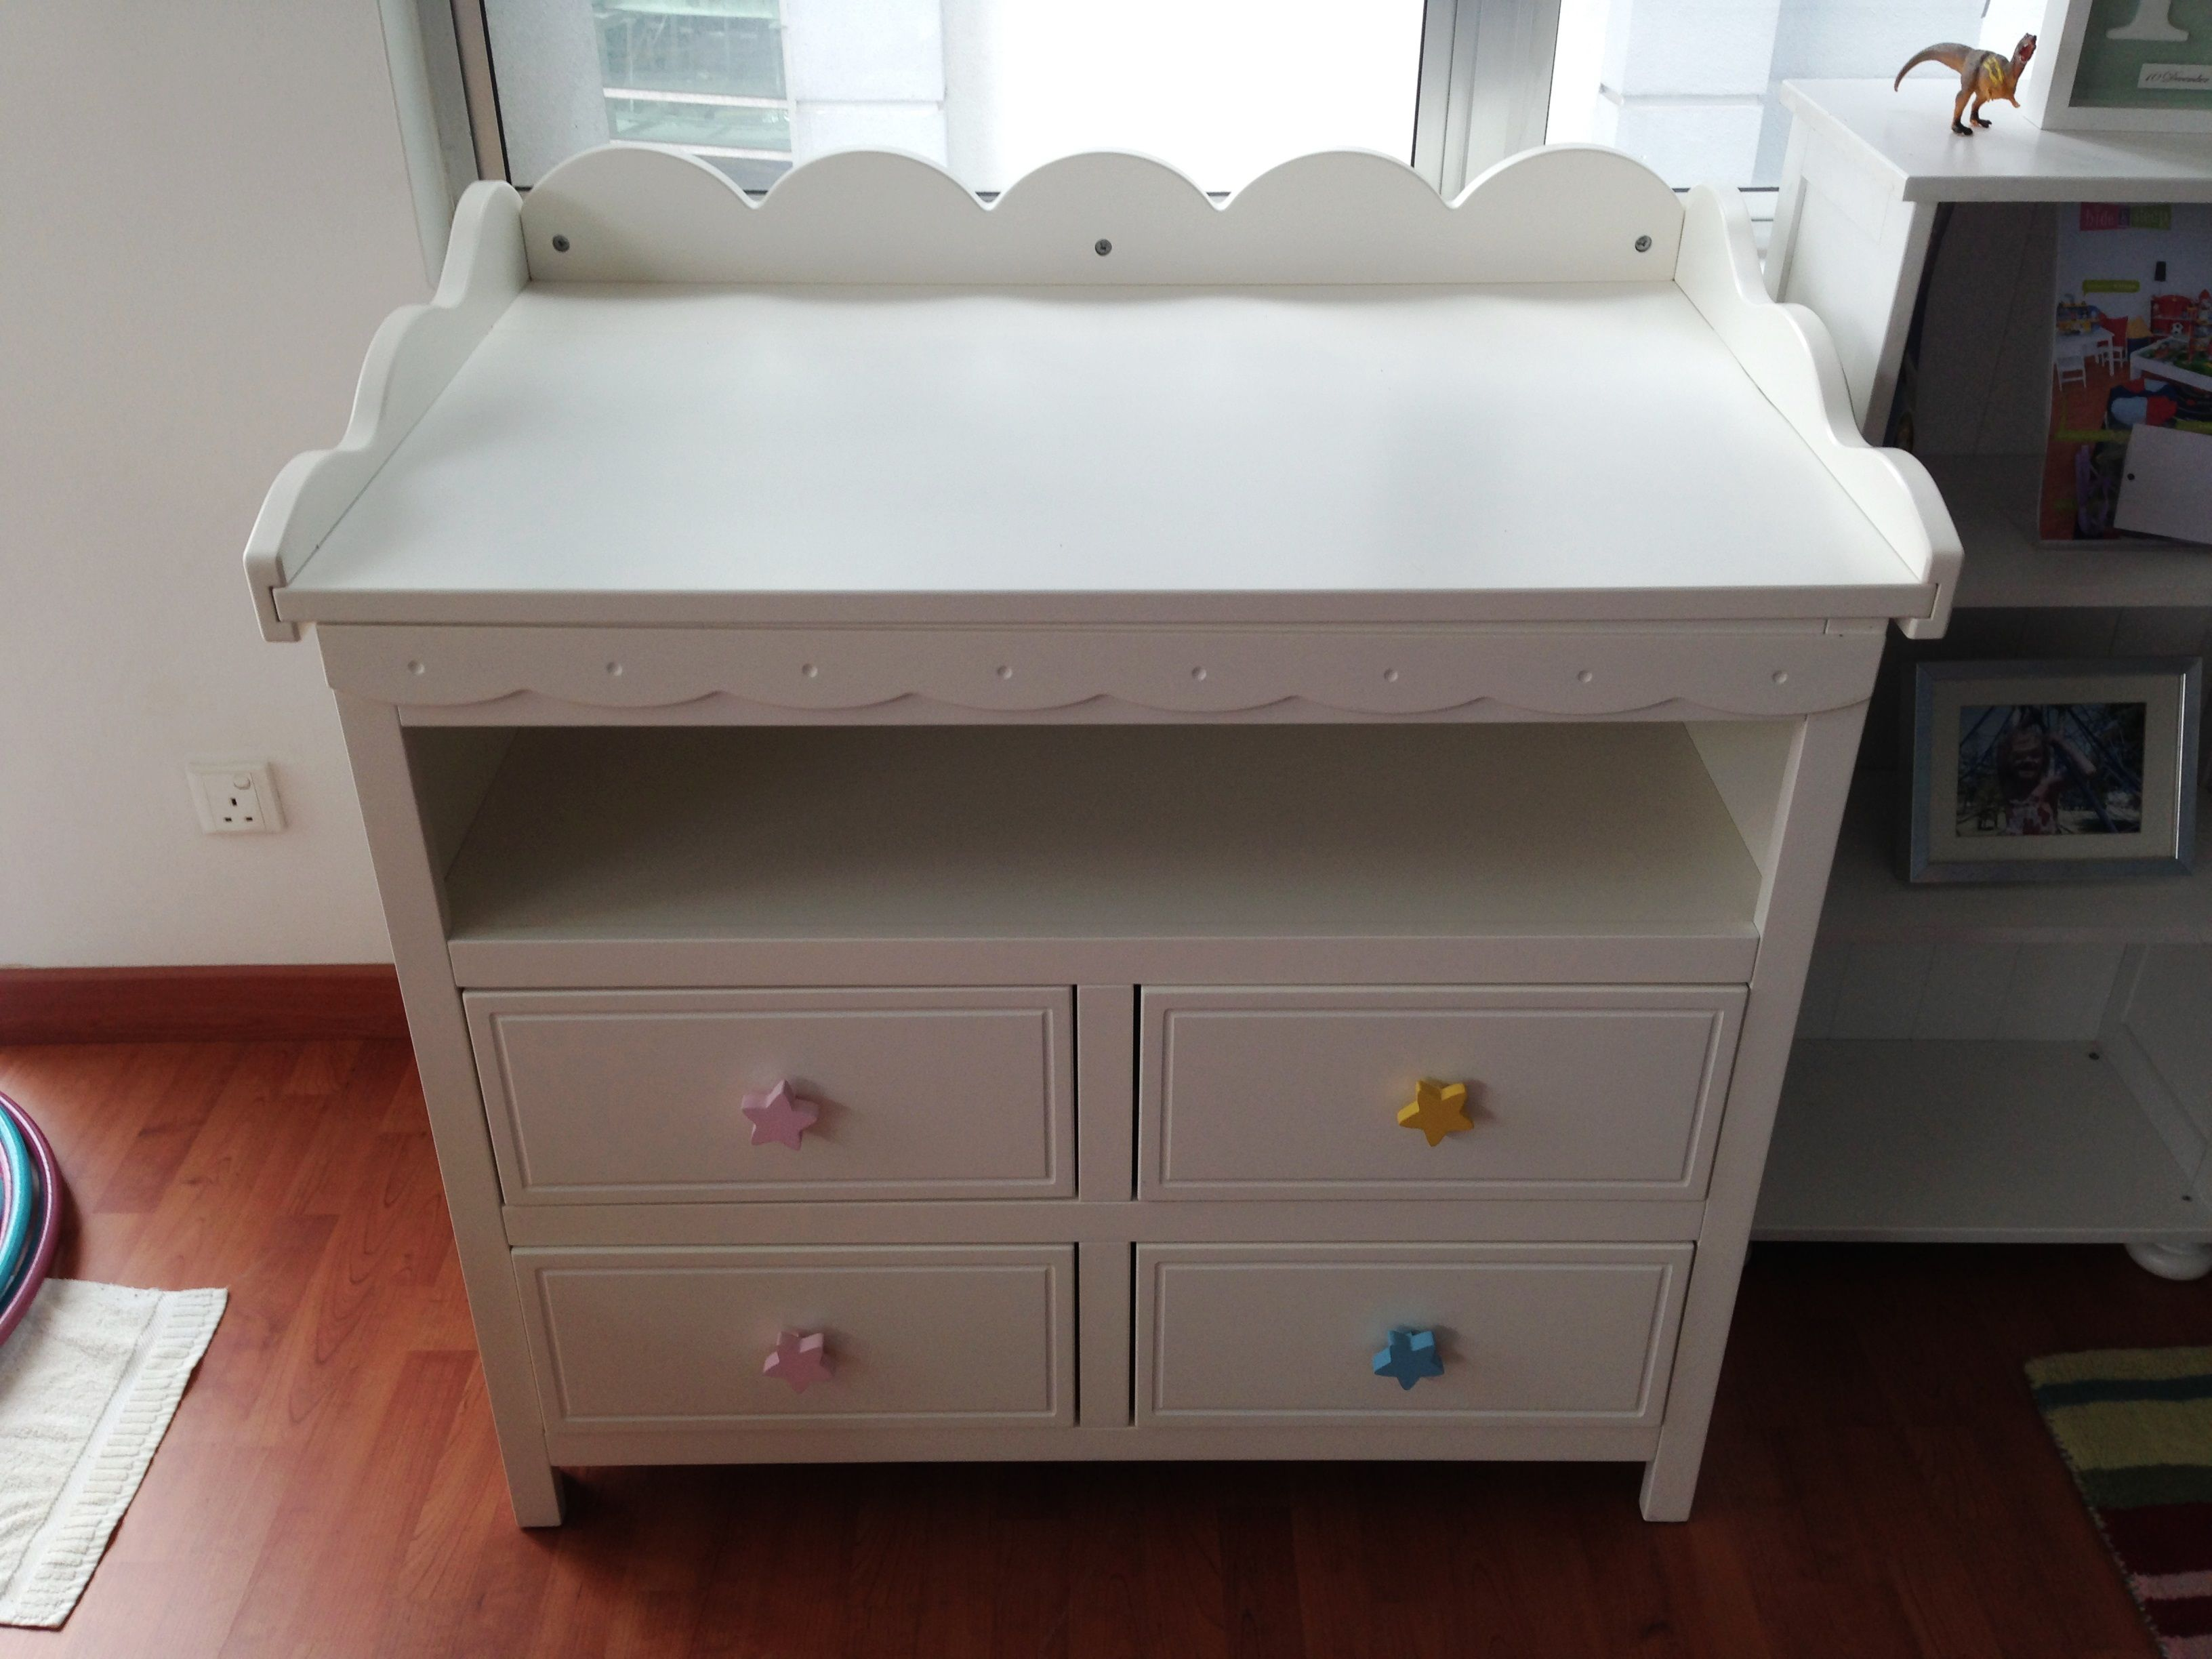 tables table wayfair kingsbridge with drawers fairmont furniture changing pdp bedside reviews uk drawer park co